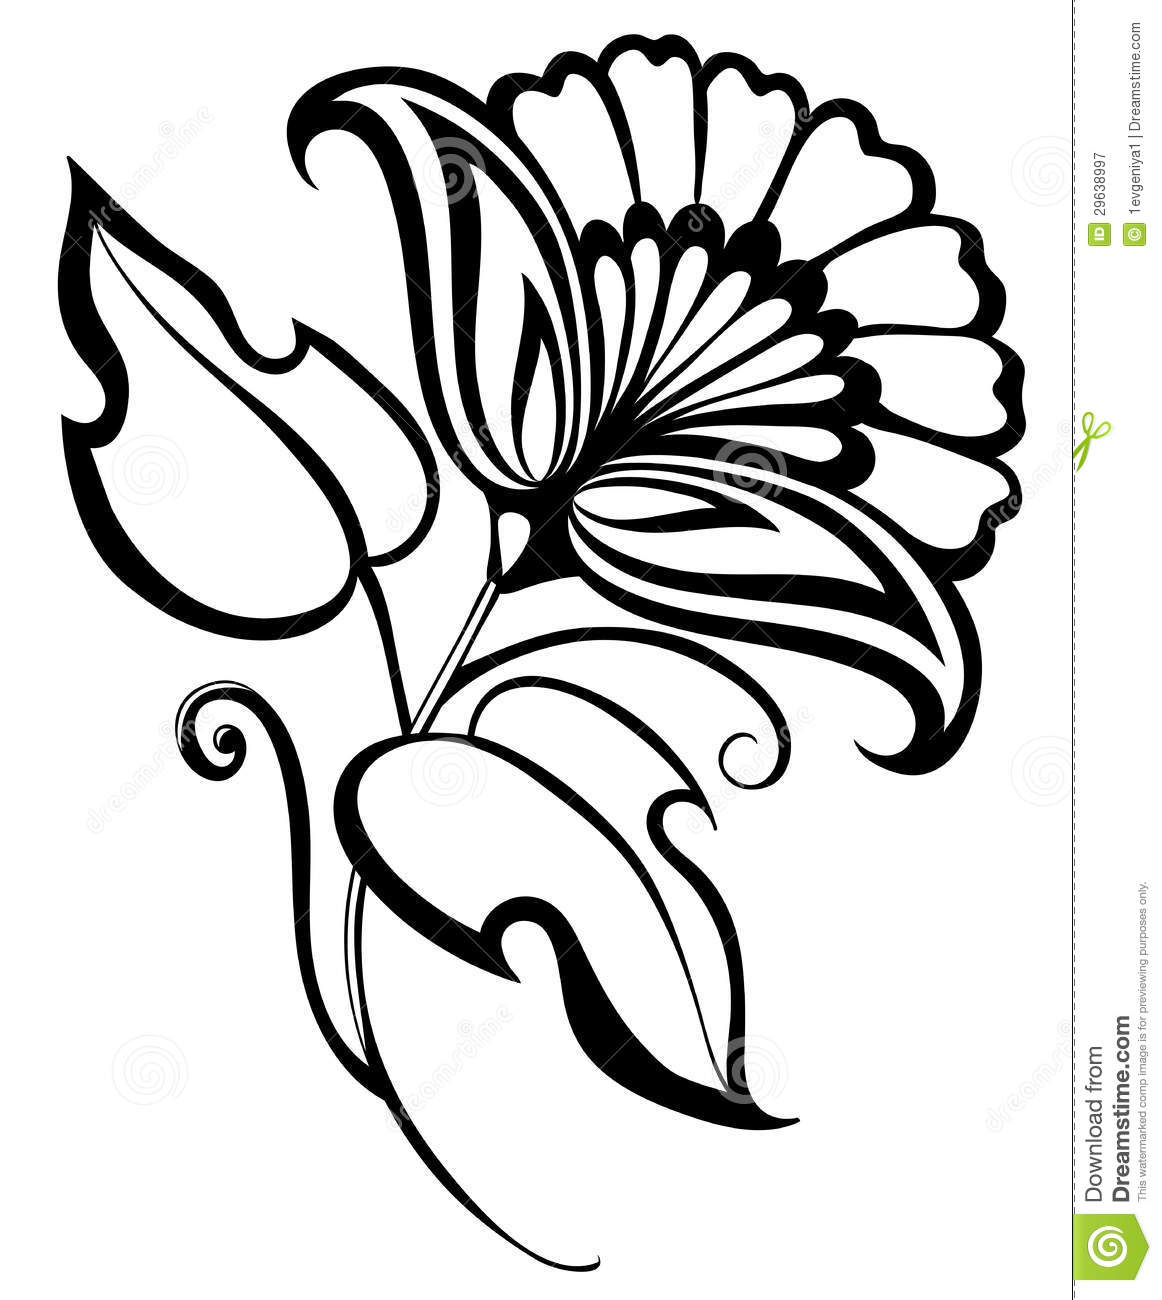 1162x1300 Pretty Designs Of Flowers To Draw Cool And Easy Flowers To Draw